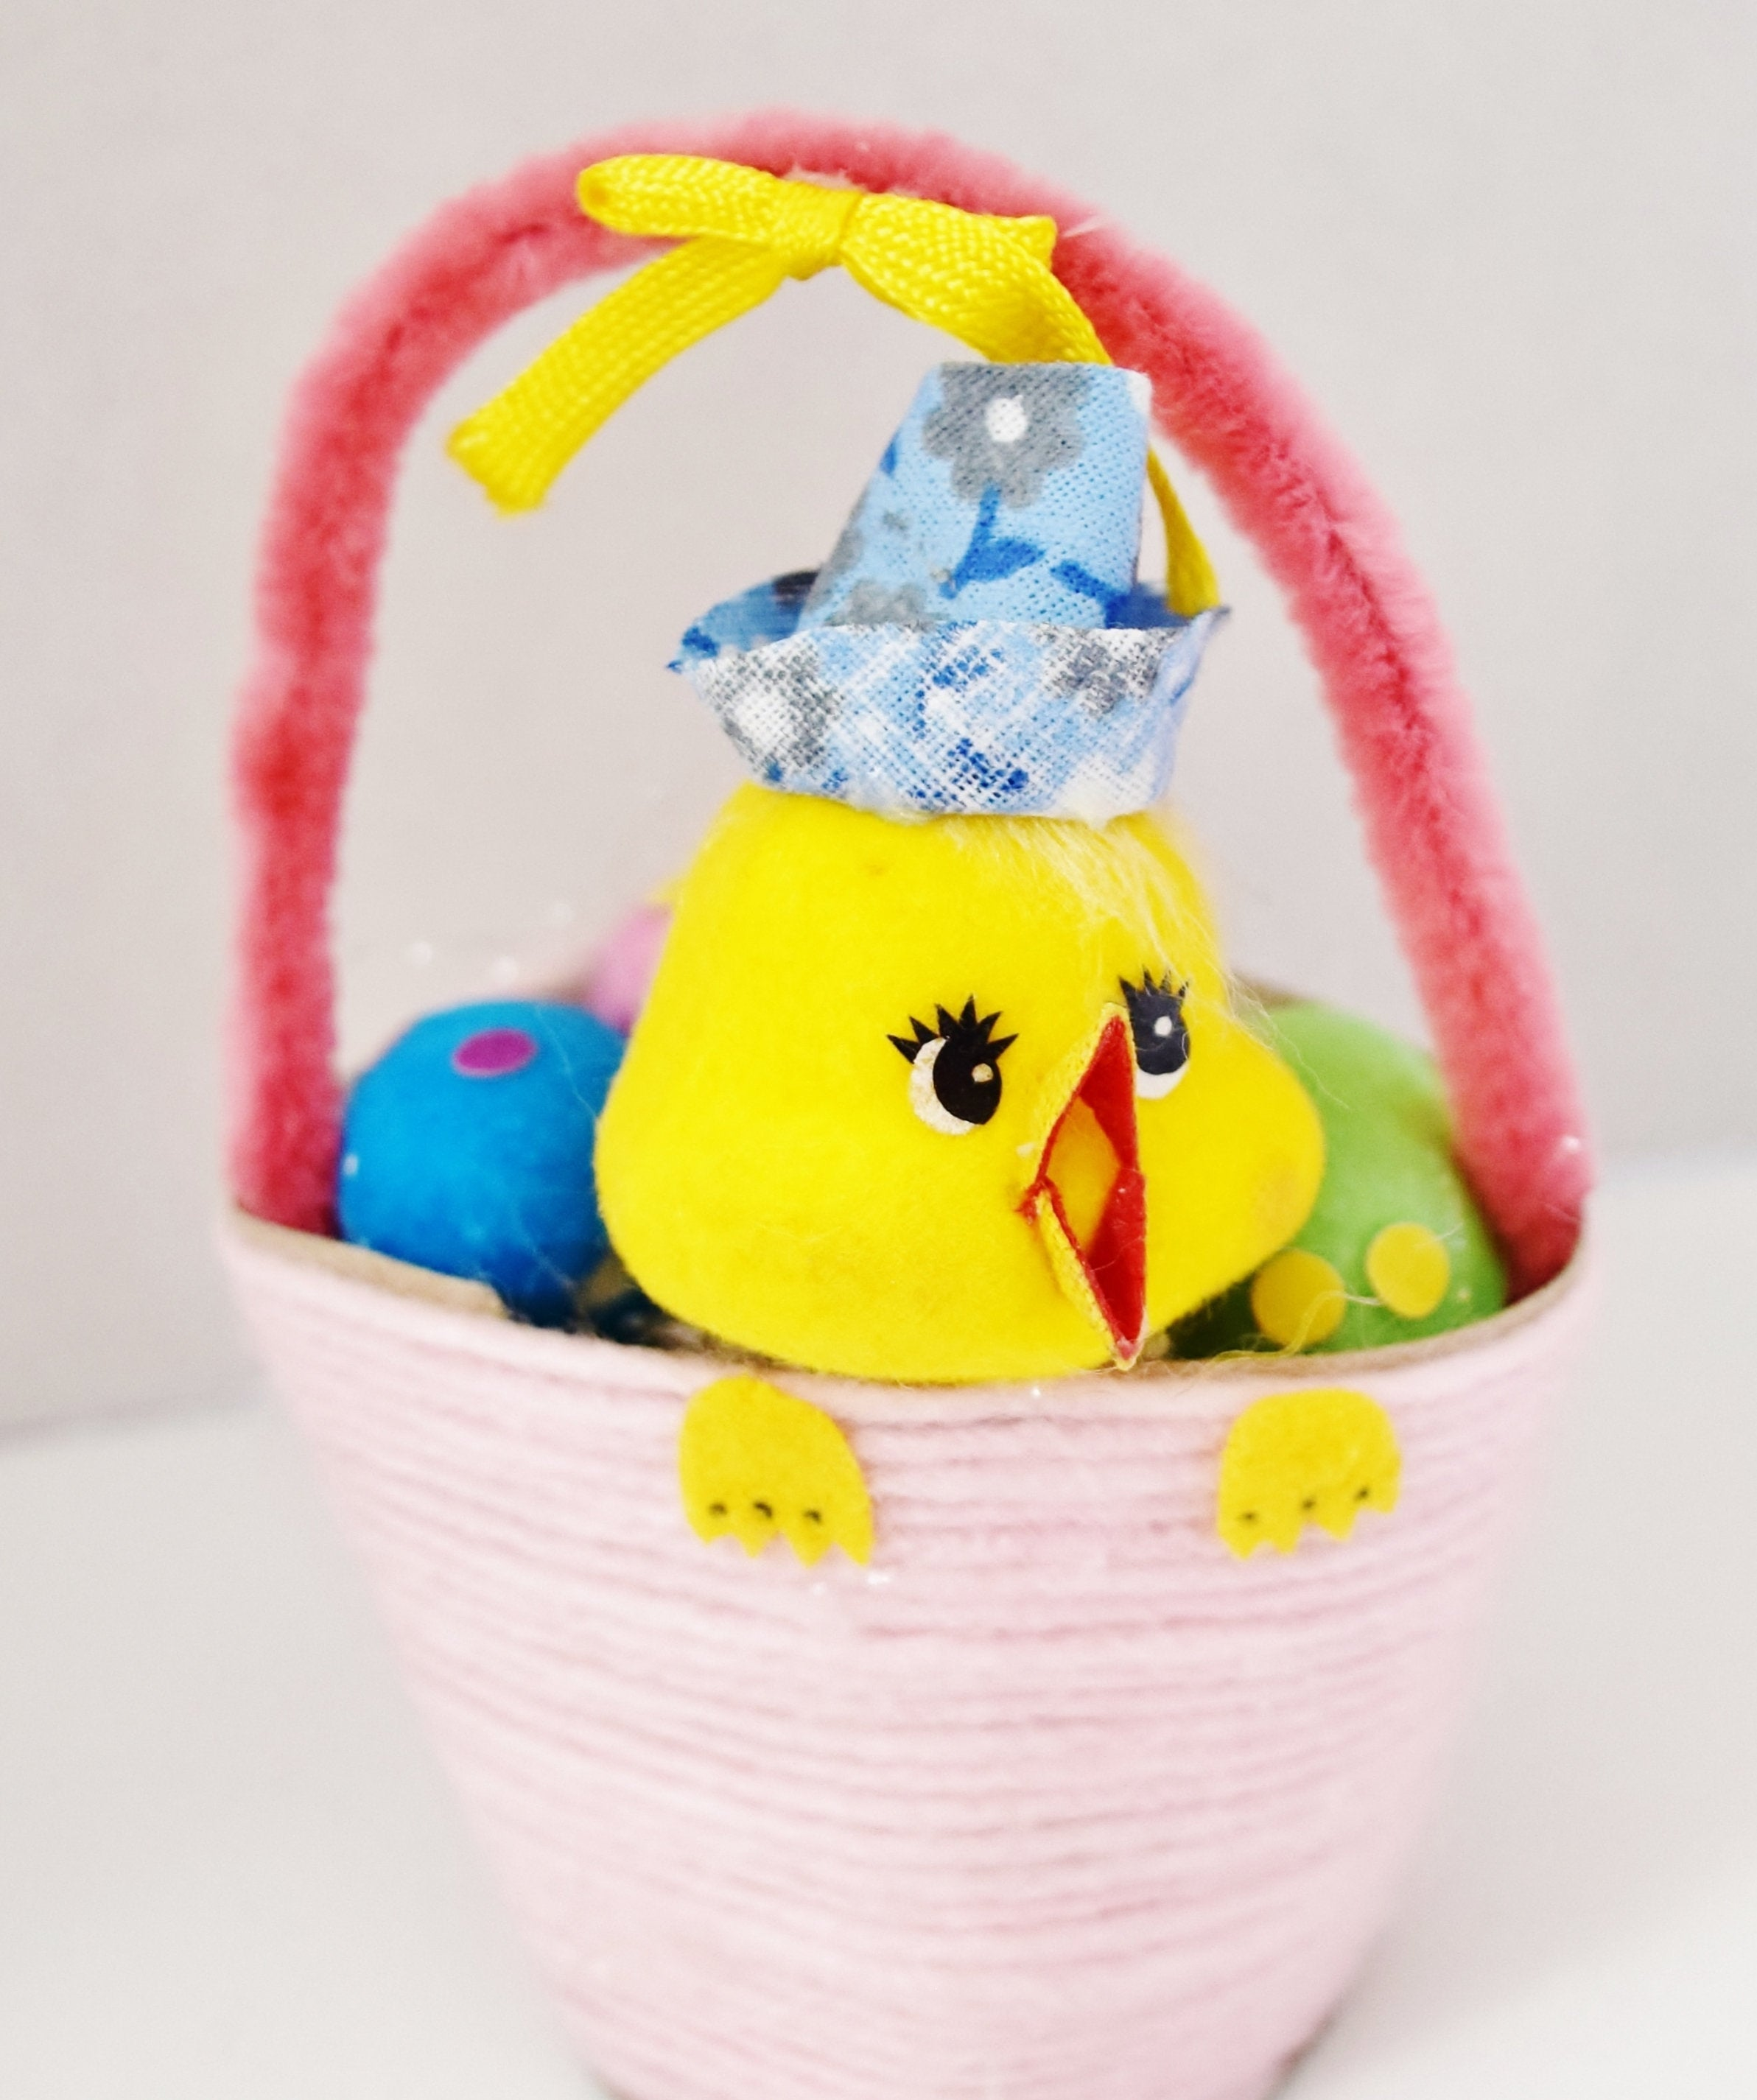 70s Easter Chick in Basket with Eggs Decoration, Made in Taiwan #1 - Ysabel Vintage Online